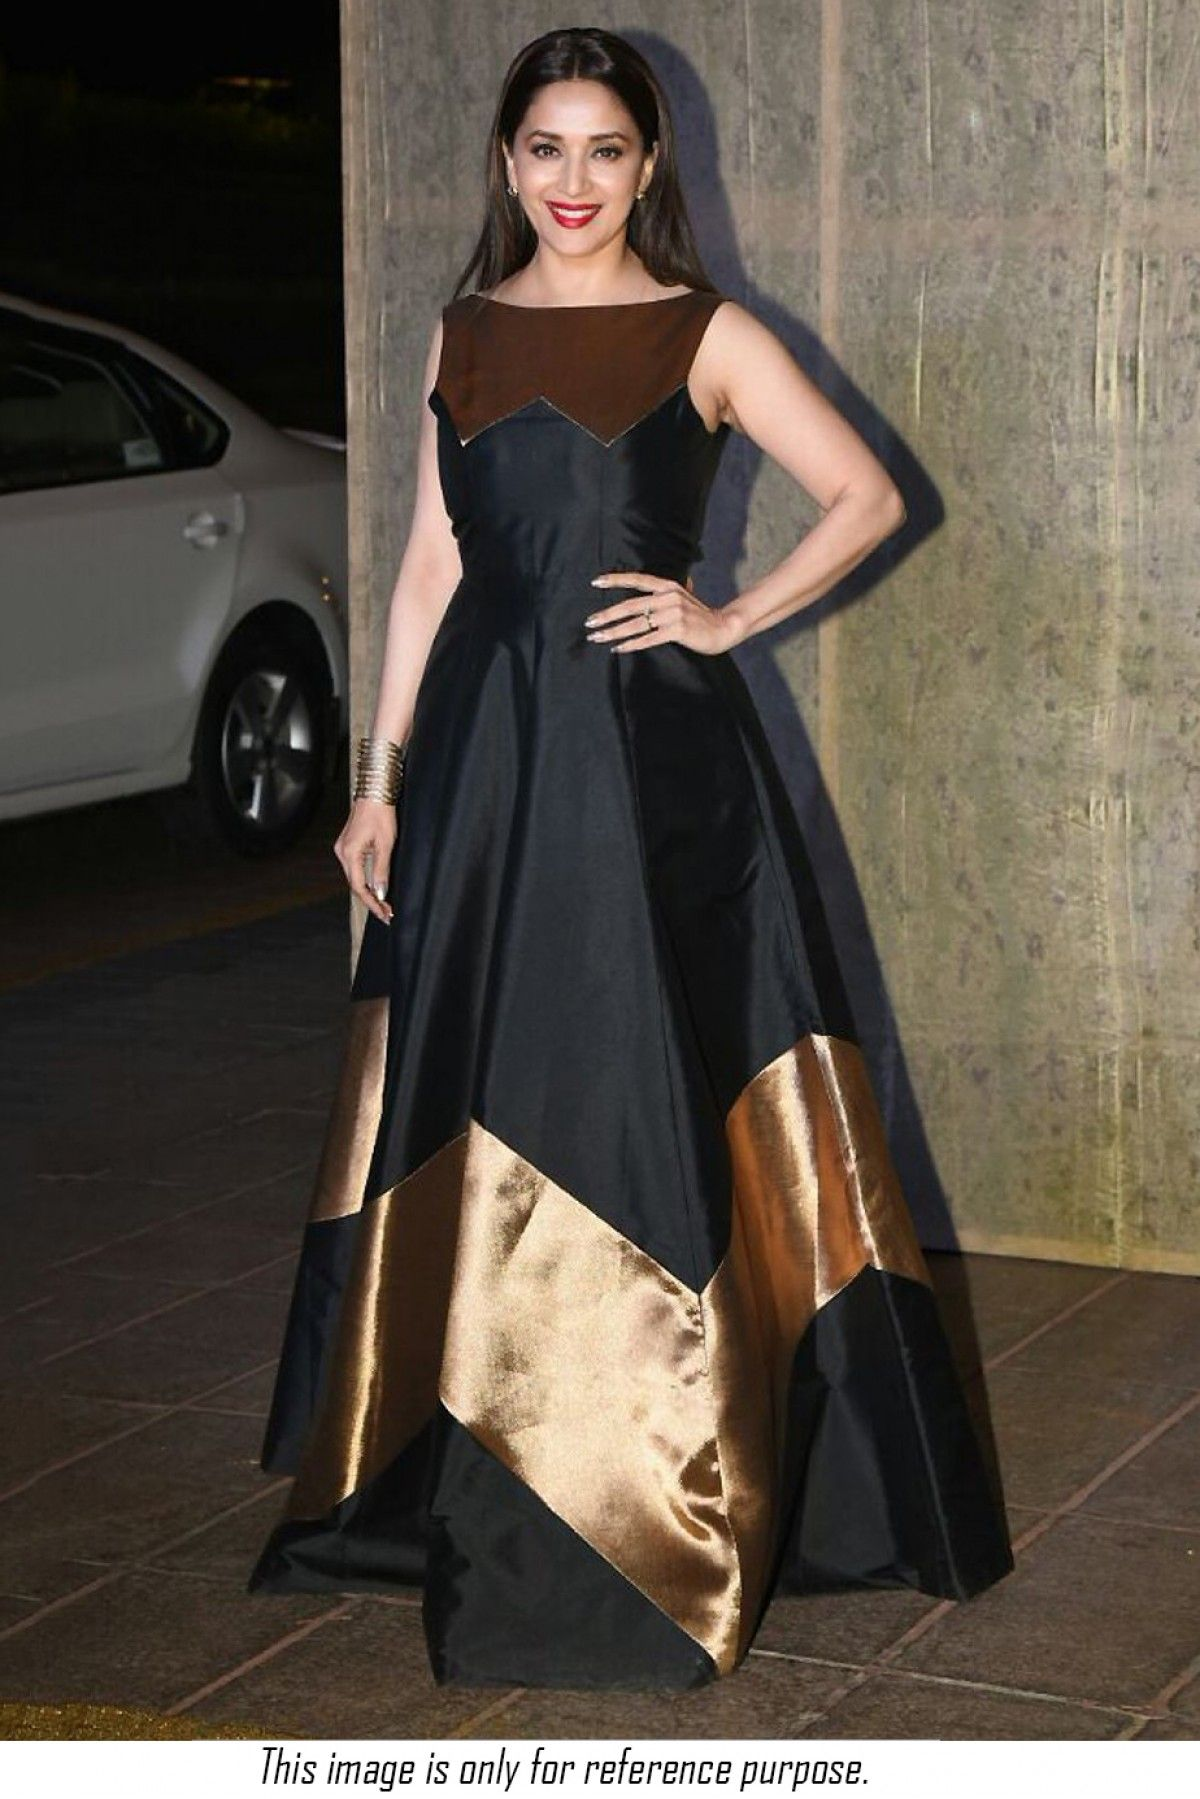 d0e73620a66 Buy Bollywood Madhuri Dixit Taffeta Silk Party Wear Gown In Black Colour  for women   ninecolours.com. Worldwide Free Shipping Available!